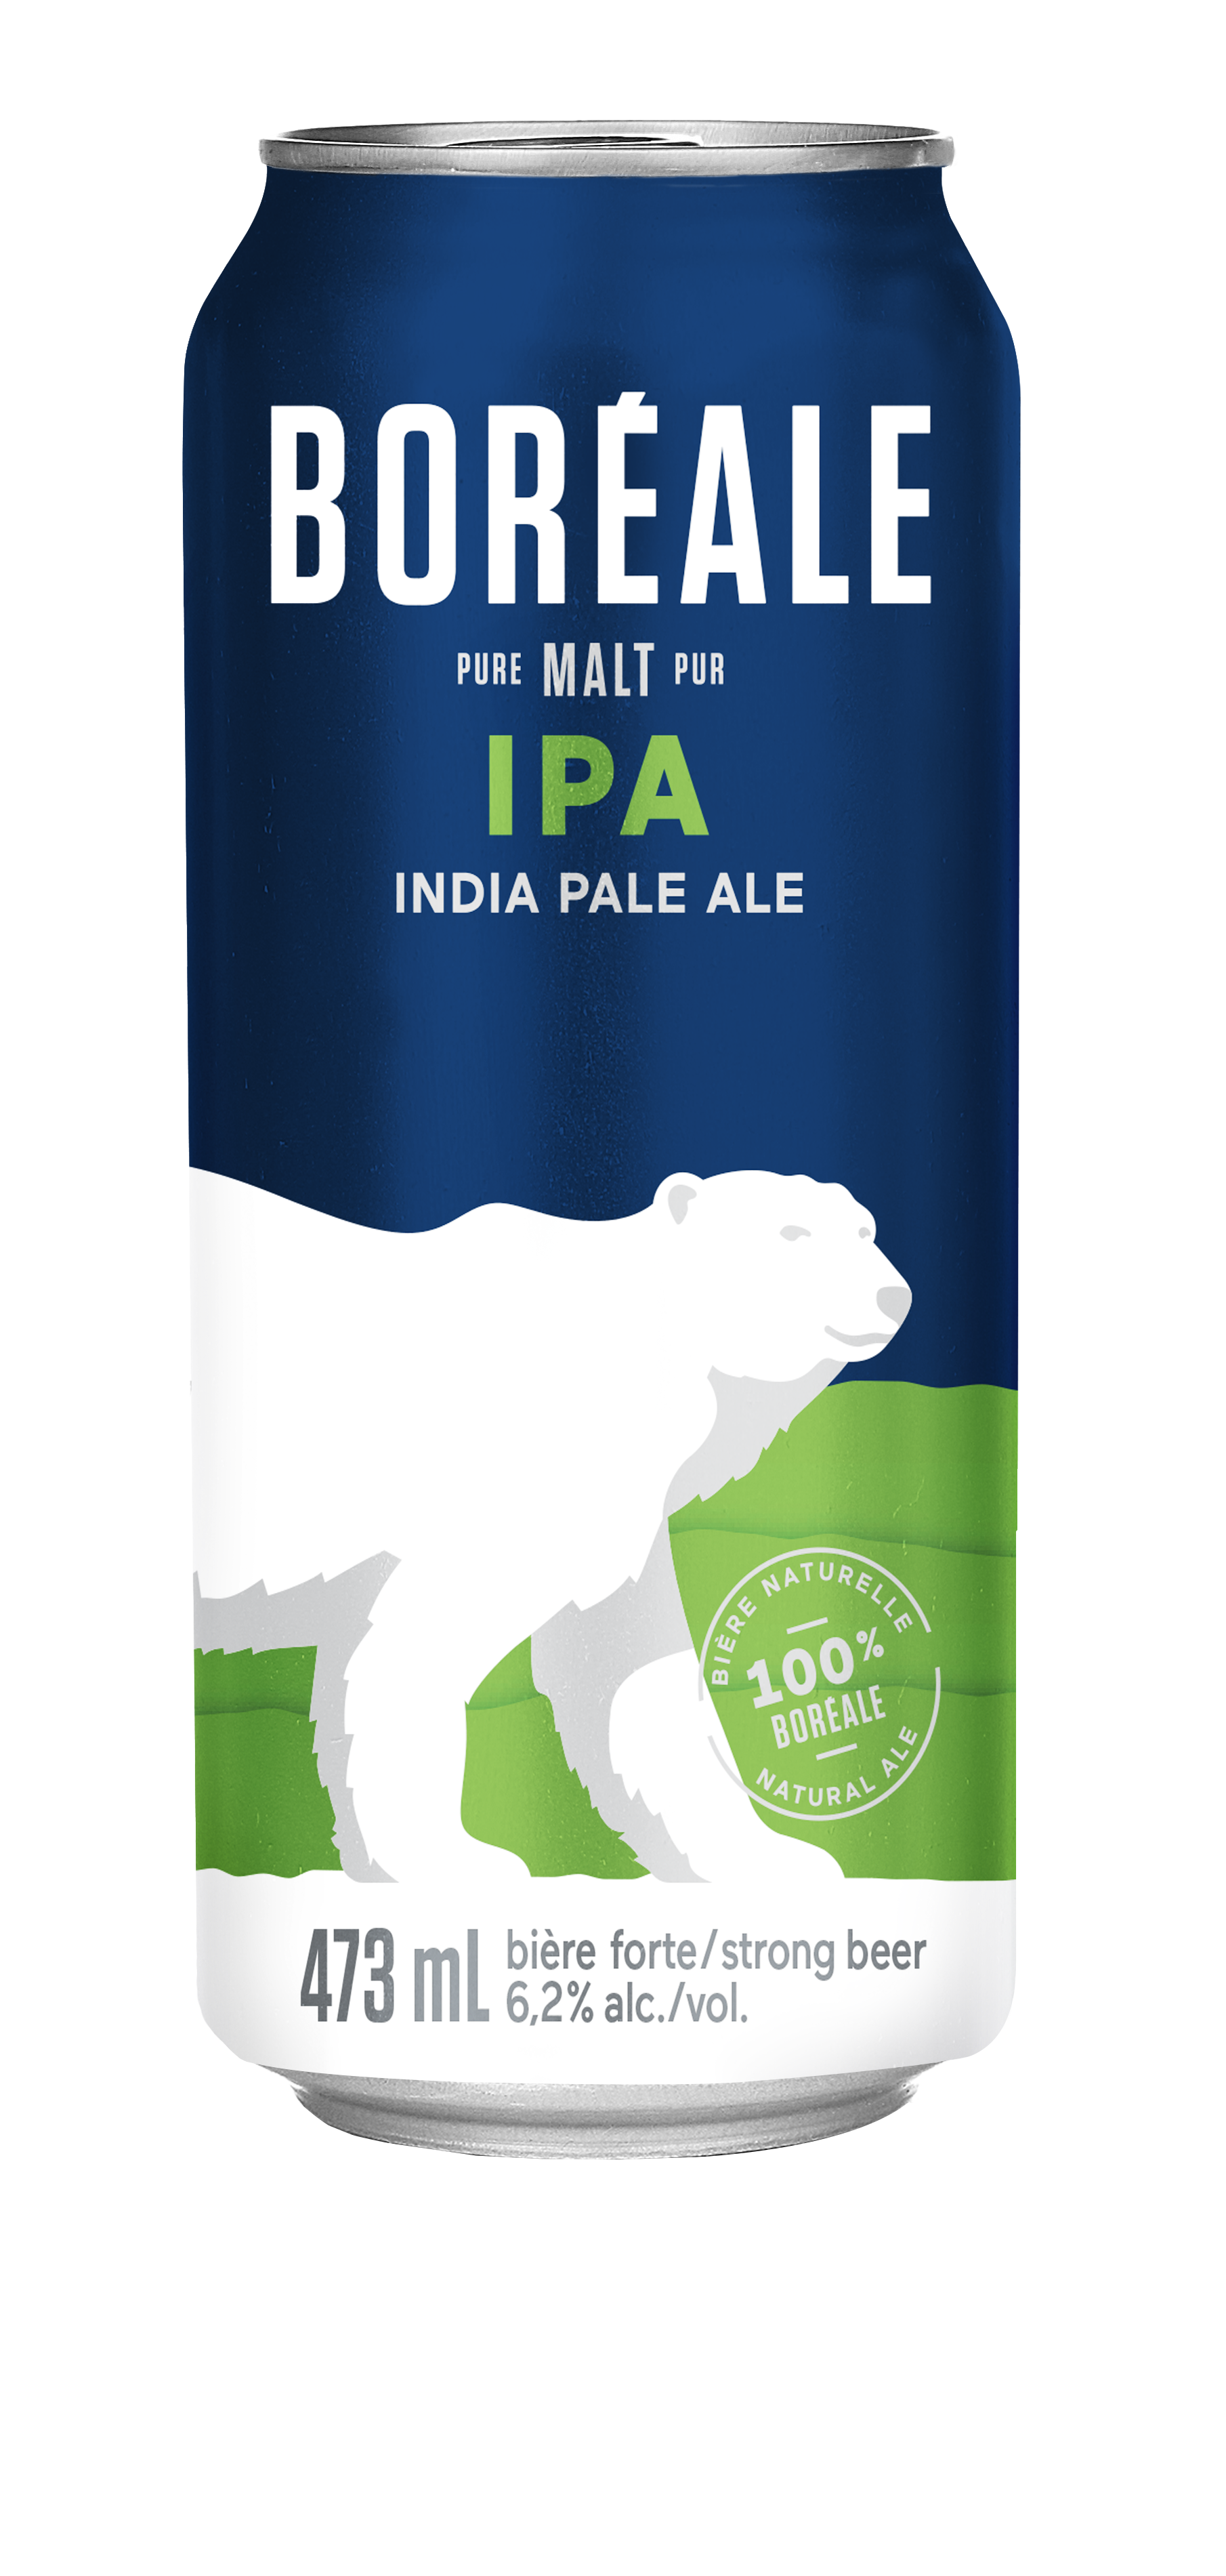 Bière forte de type India Pale Ale 473 mL - canette*_*Beer strong taste type India Pale Ale 473 mL - can*_*Cerveza IPA  473 mL - Lata